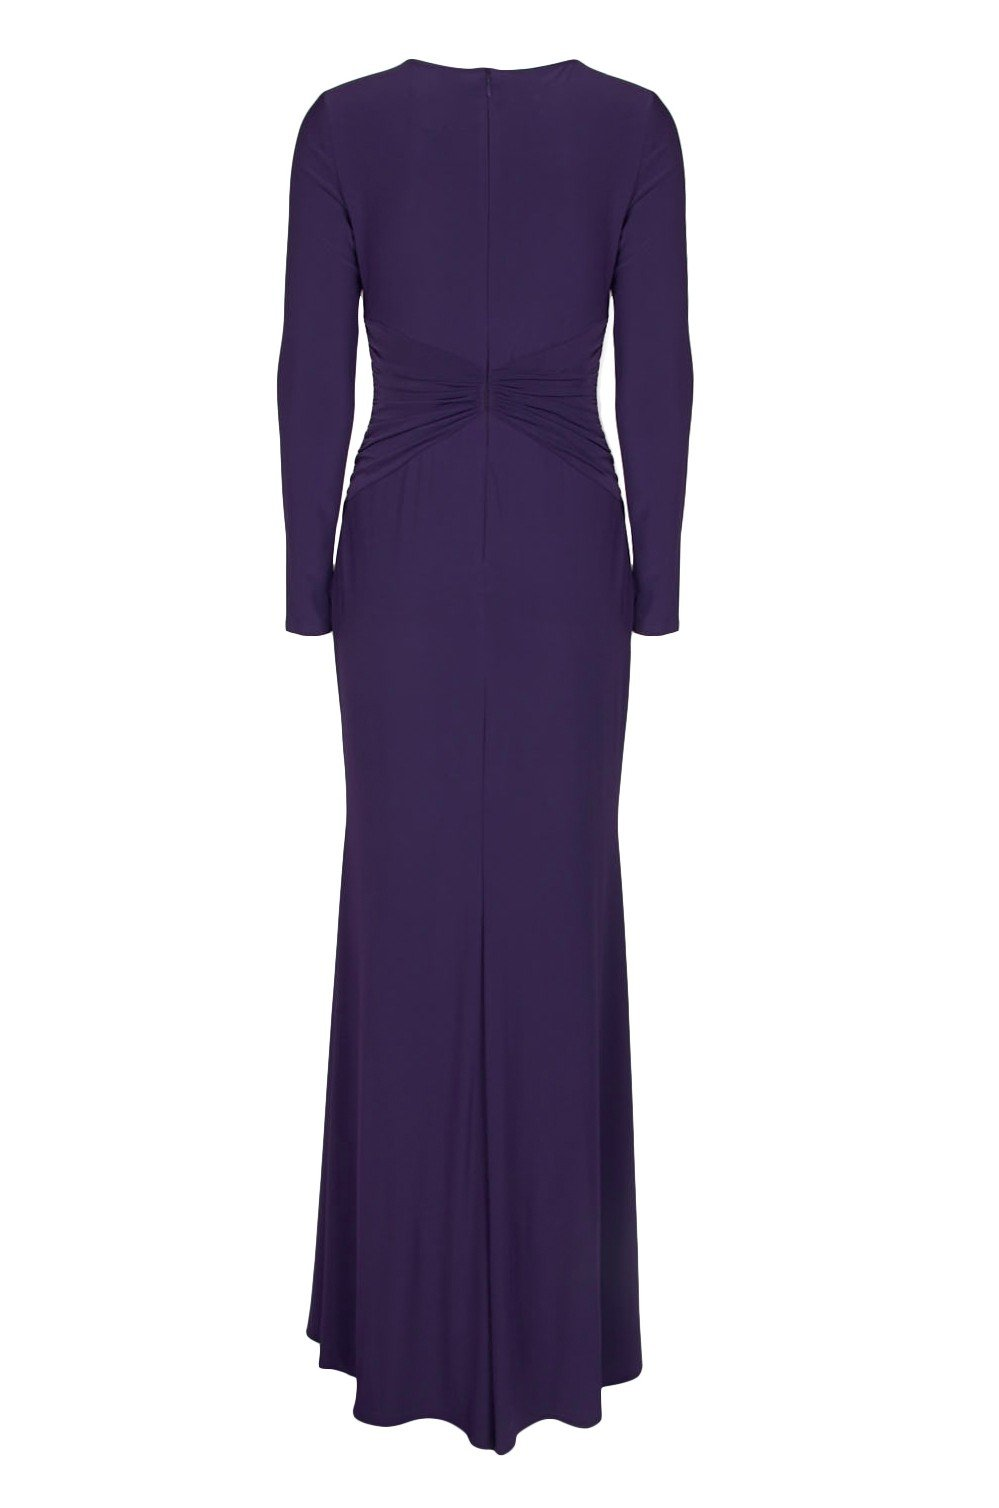 Adrianna Papell - AP1E204090 Long Sleeve Ruched Jersey Sheath Dress In Purple